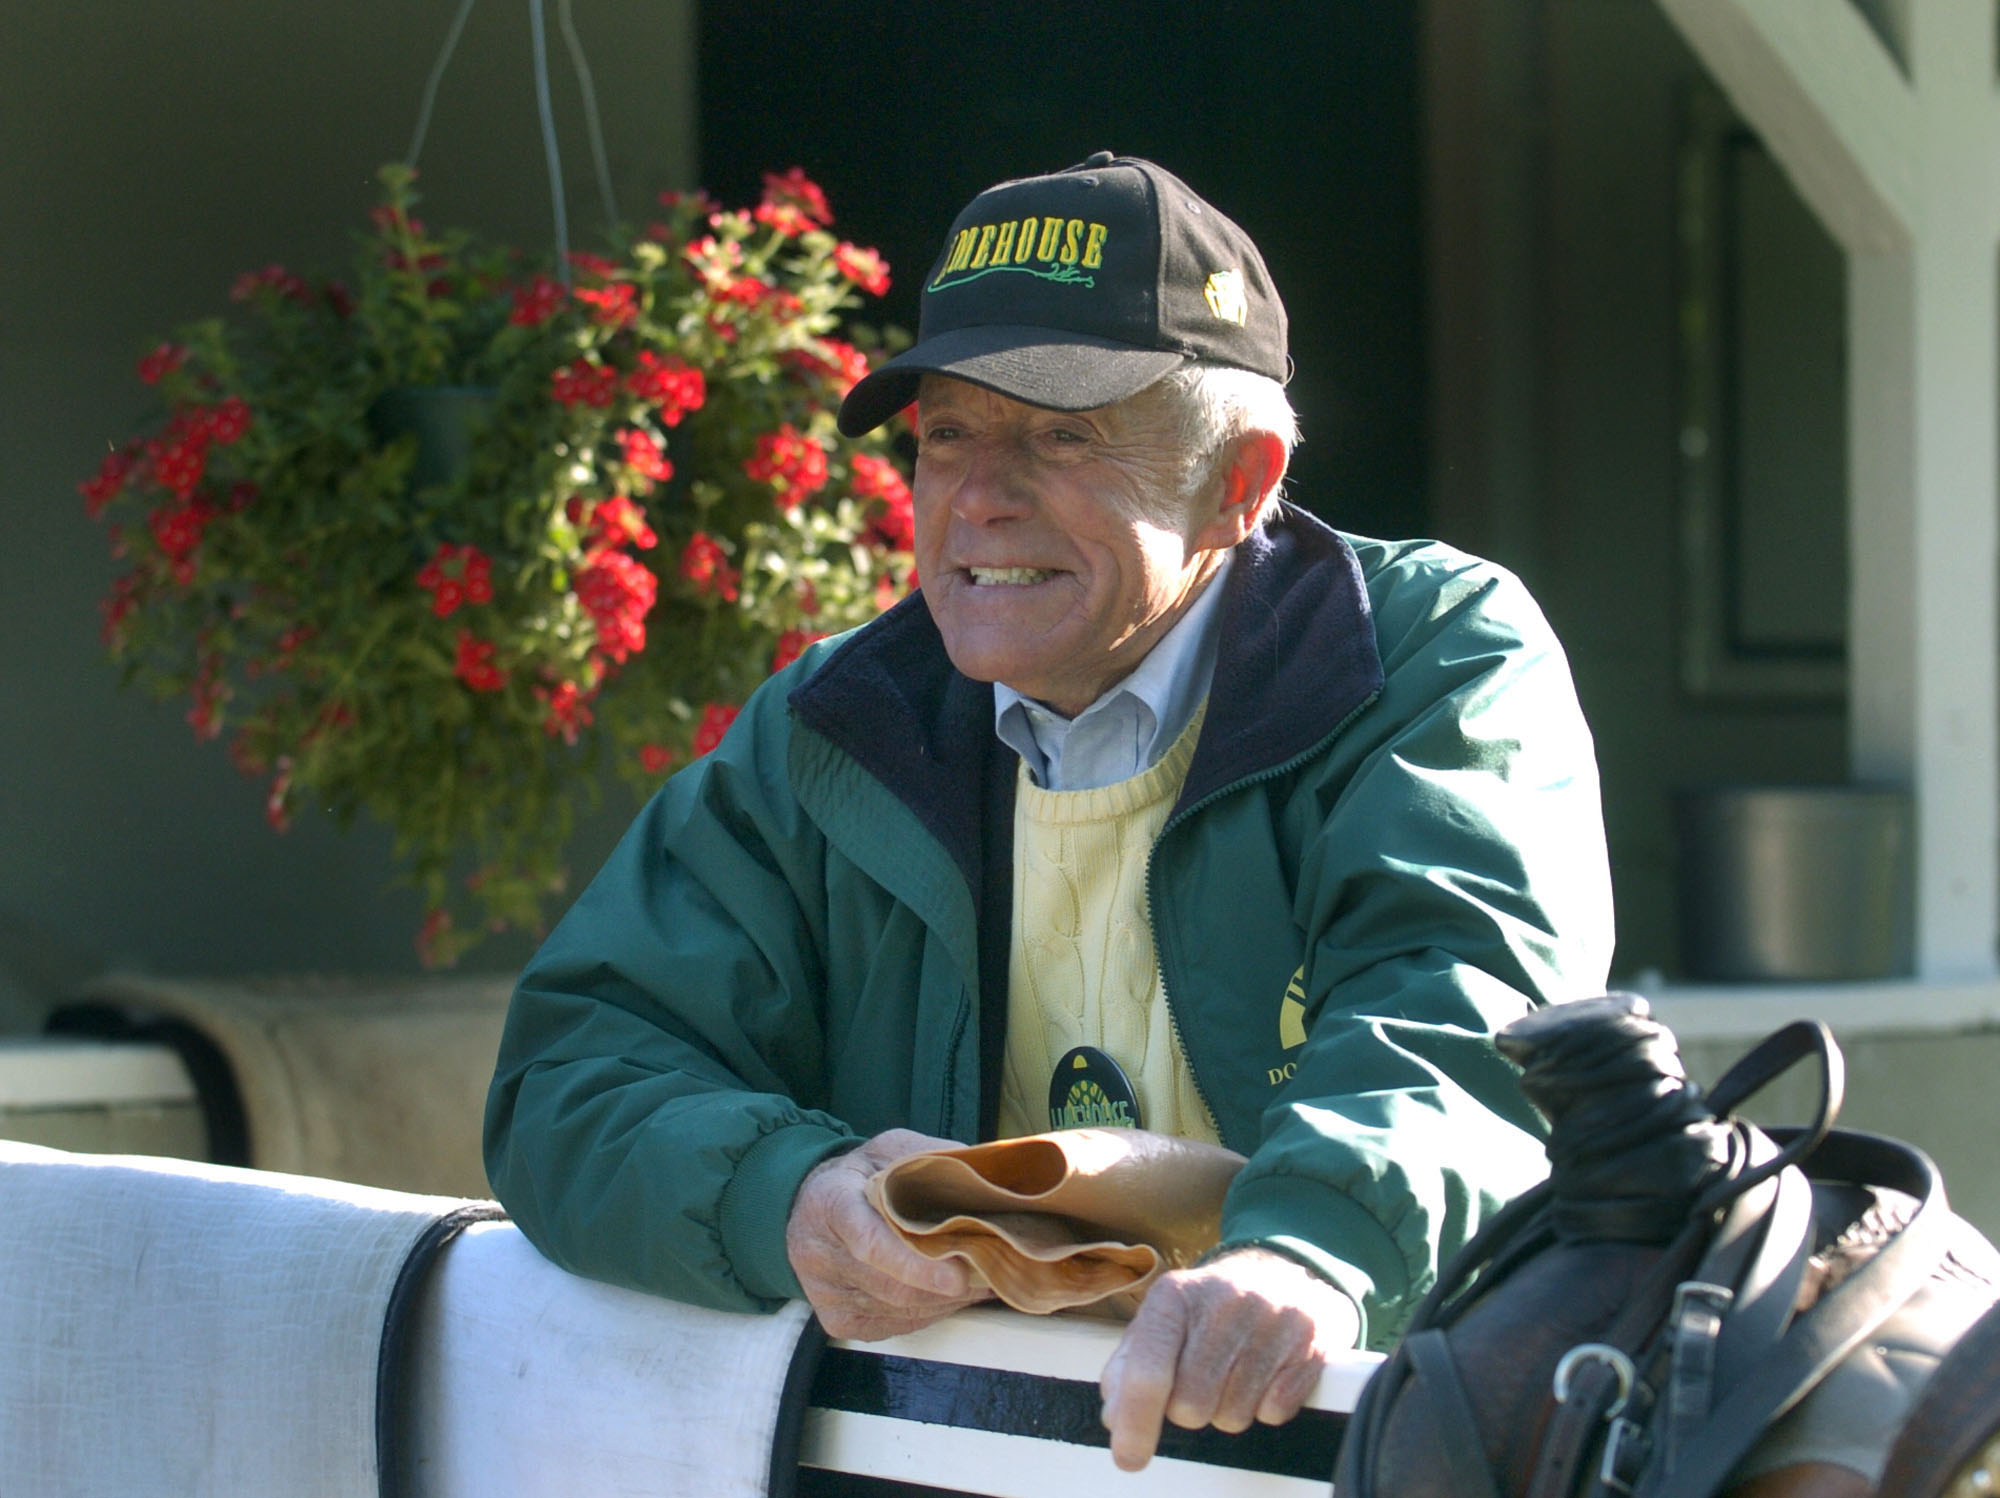 Cot Campbell spending a morning on the Saratoga backstretch (Barry Bornstein)